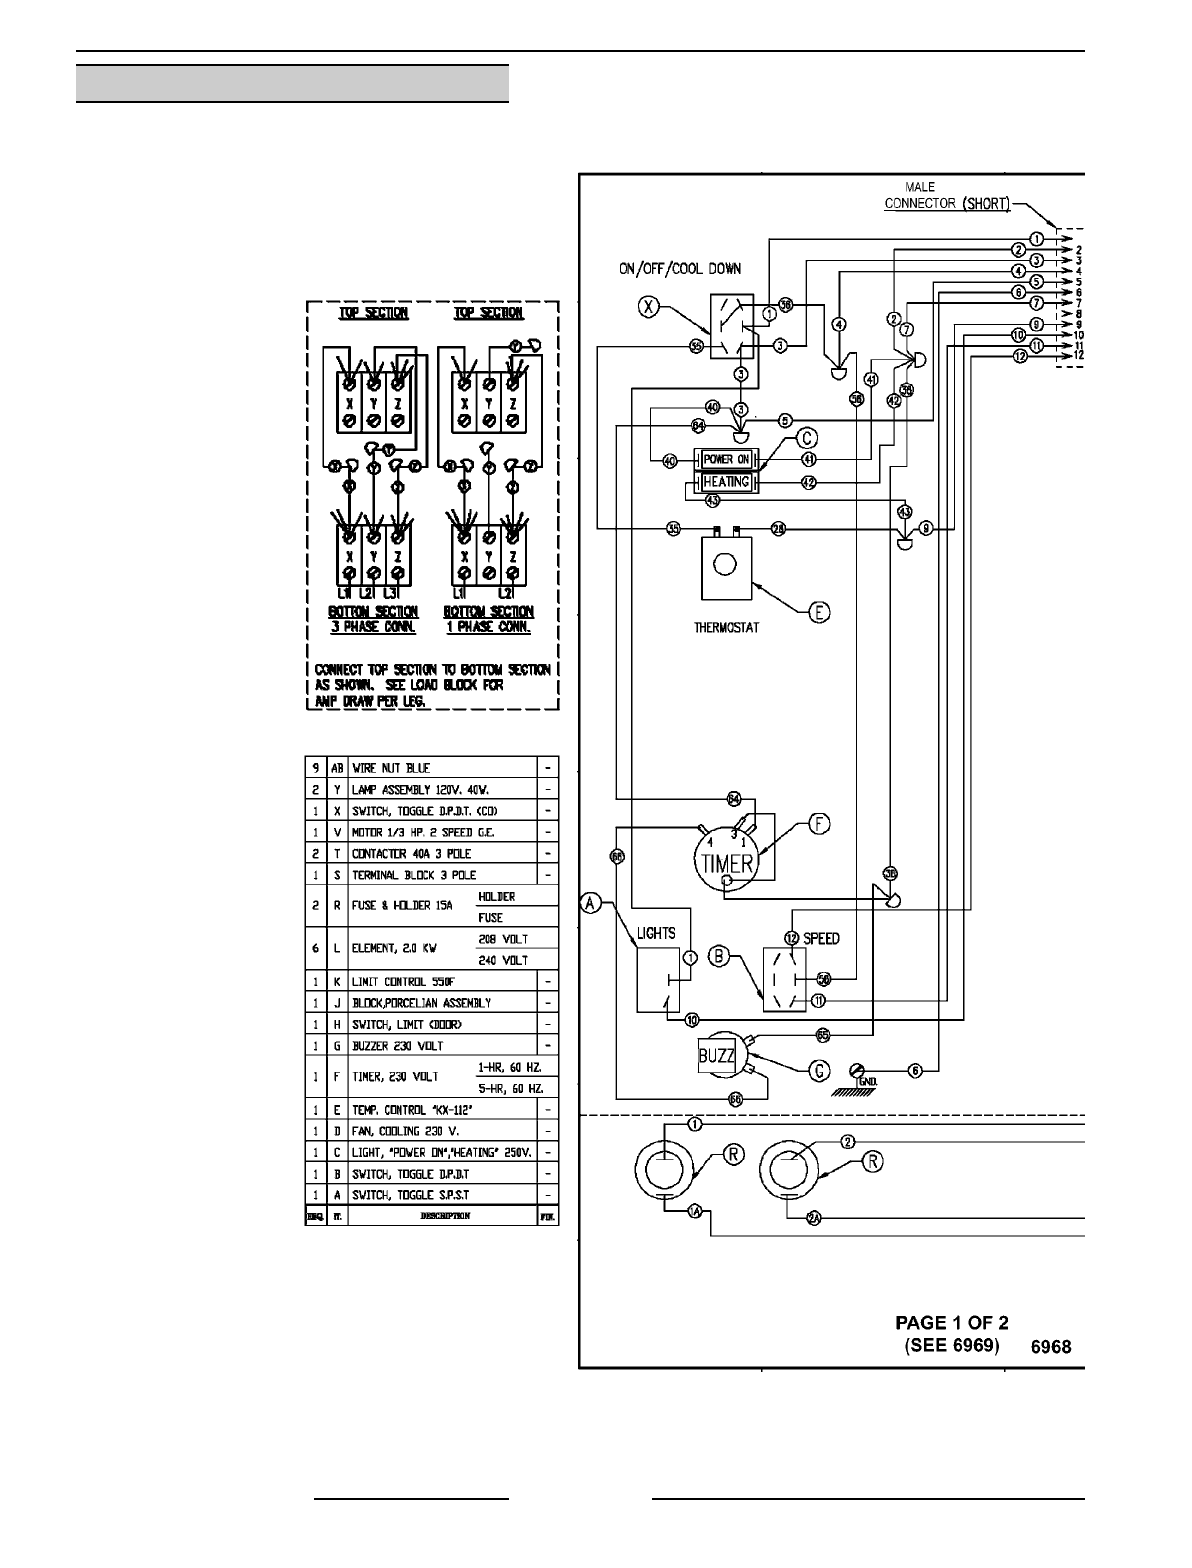 0817ac3c 3137 4604 9f9b 78b6d15f93e9 bg2c page 44 of vulcan hart convection oven vc4ed user guide hard wiring diagram for goulds we0511h pump at honlapkeszites.co